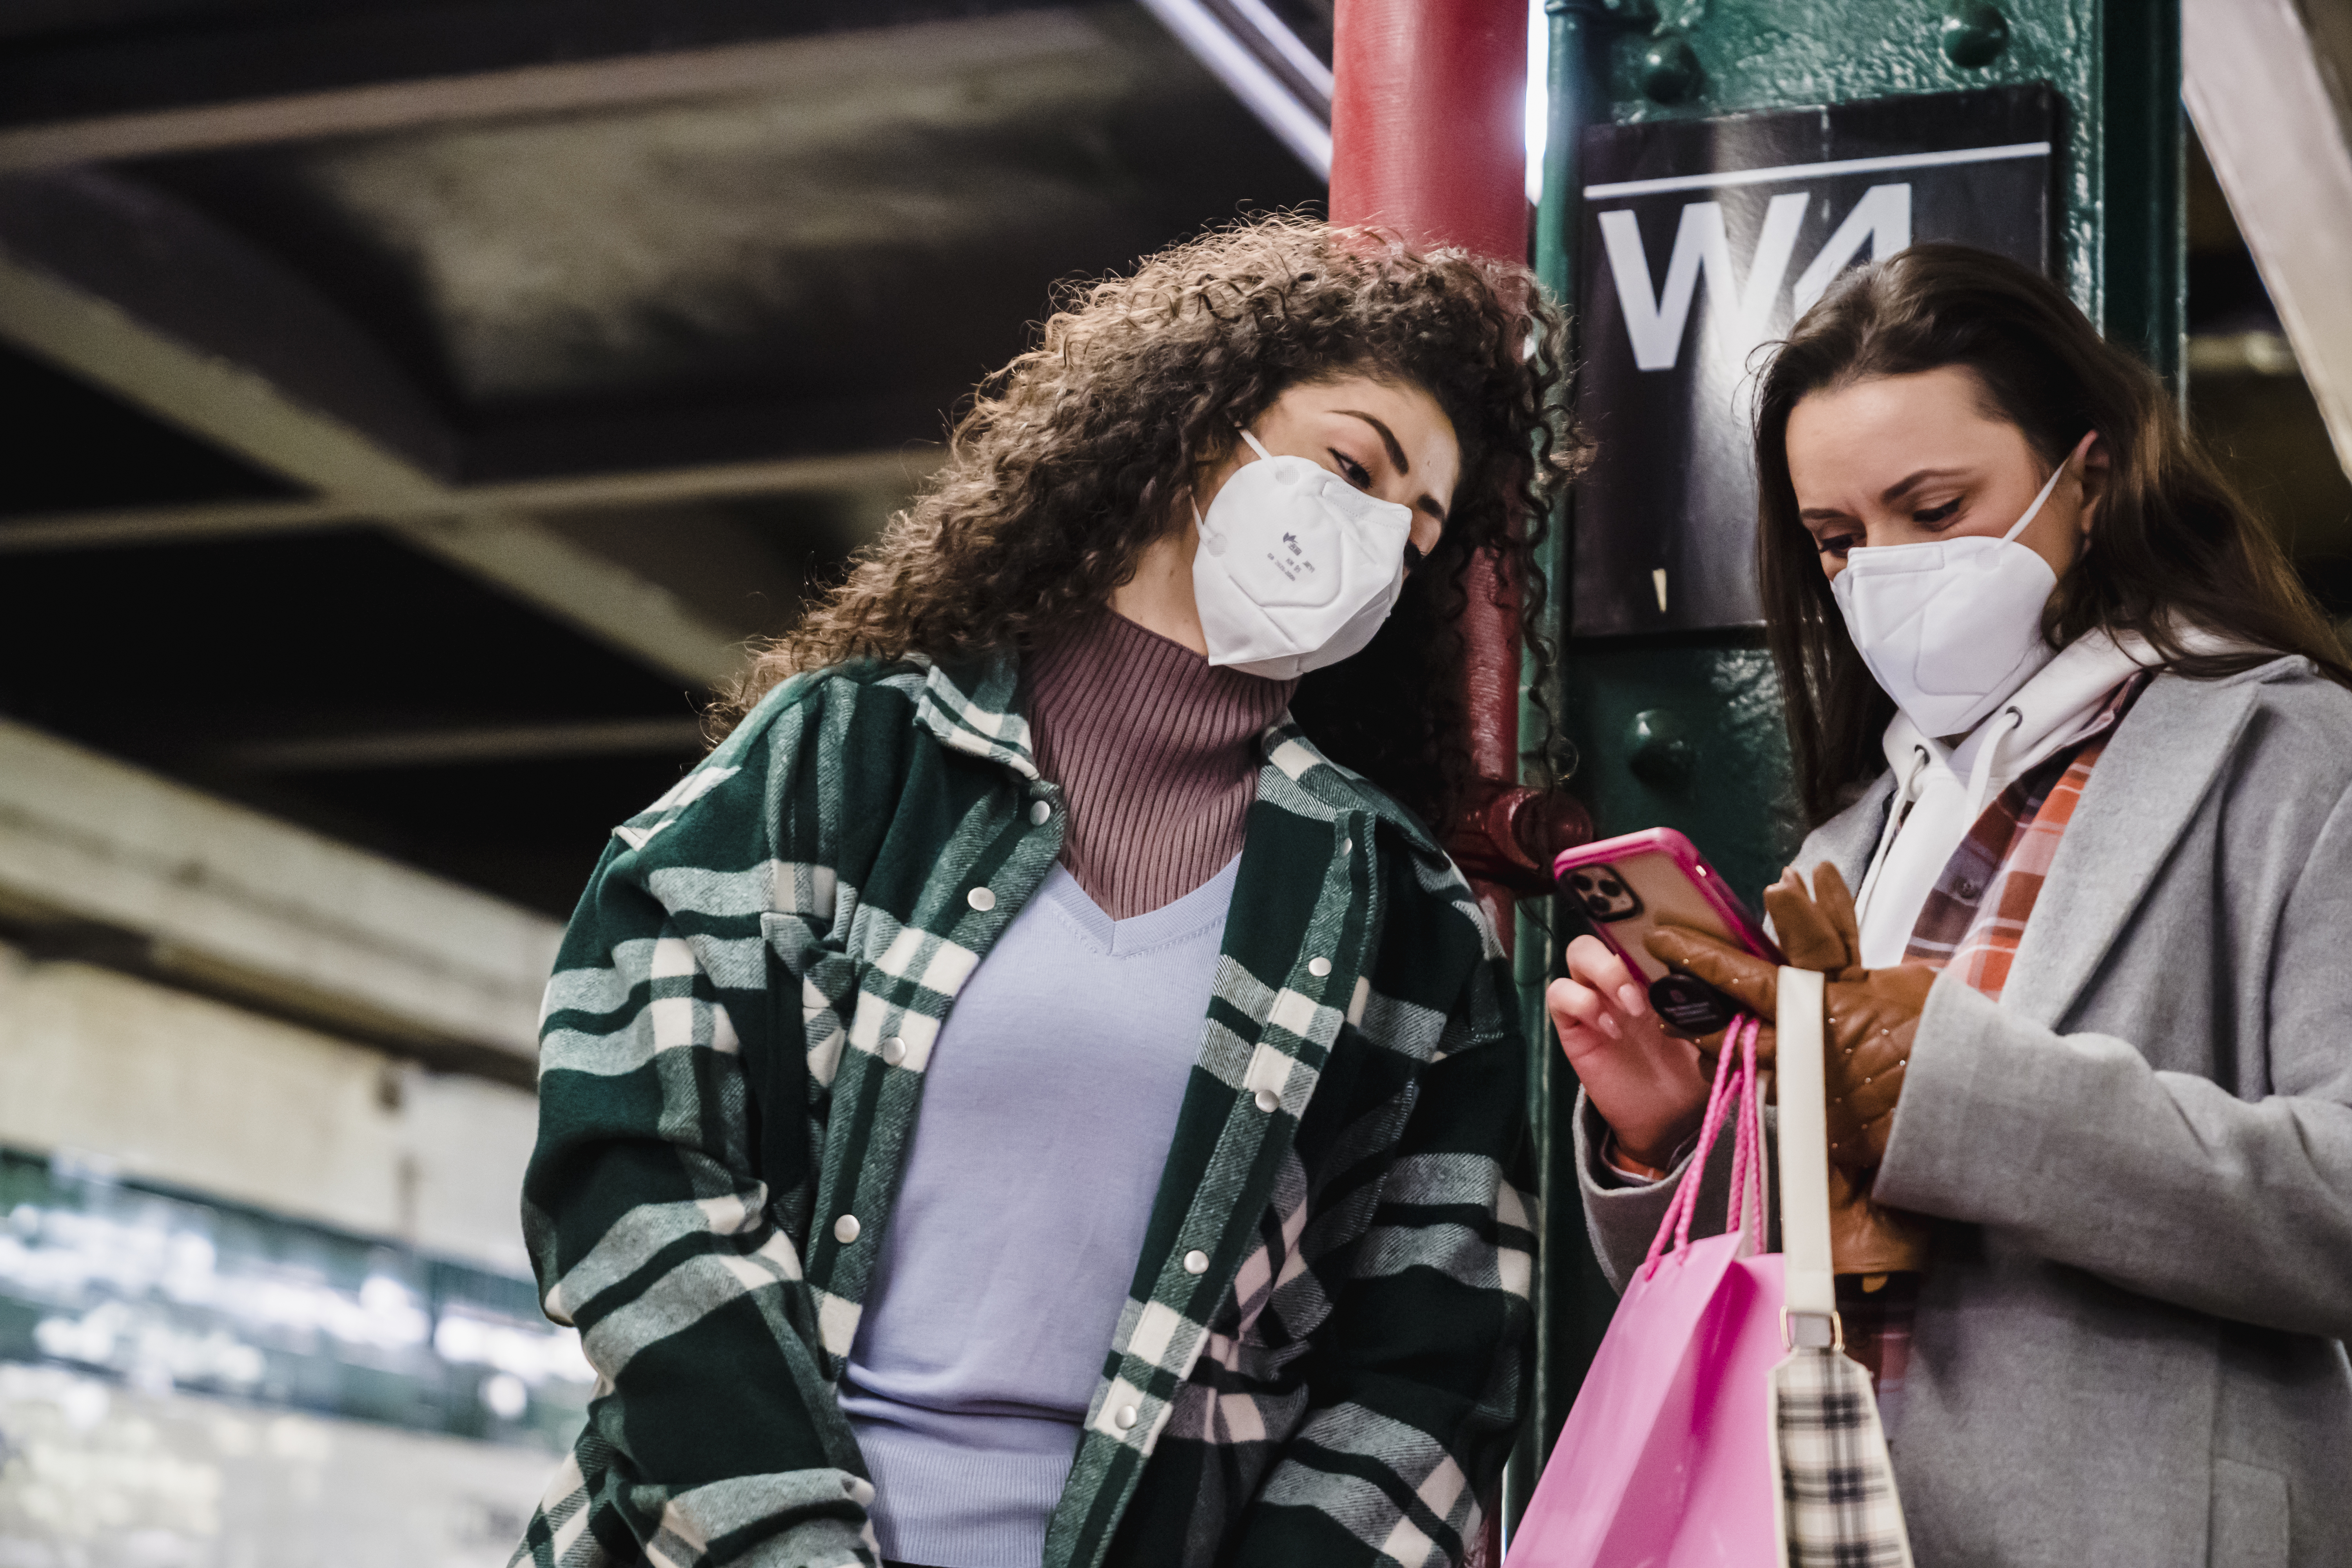 girlfriends in masks using cellphone with paper bag in metro